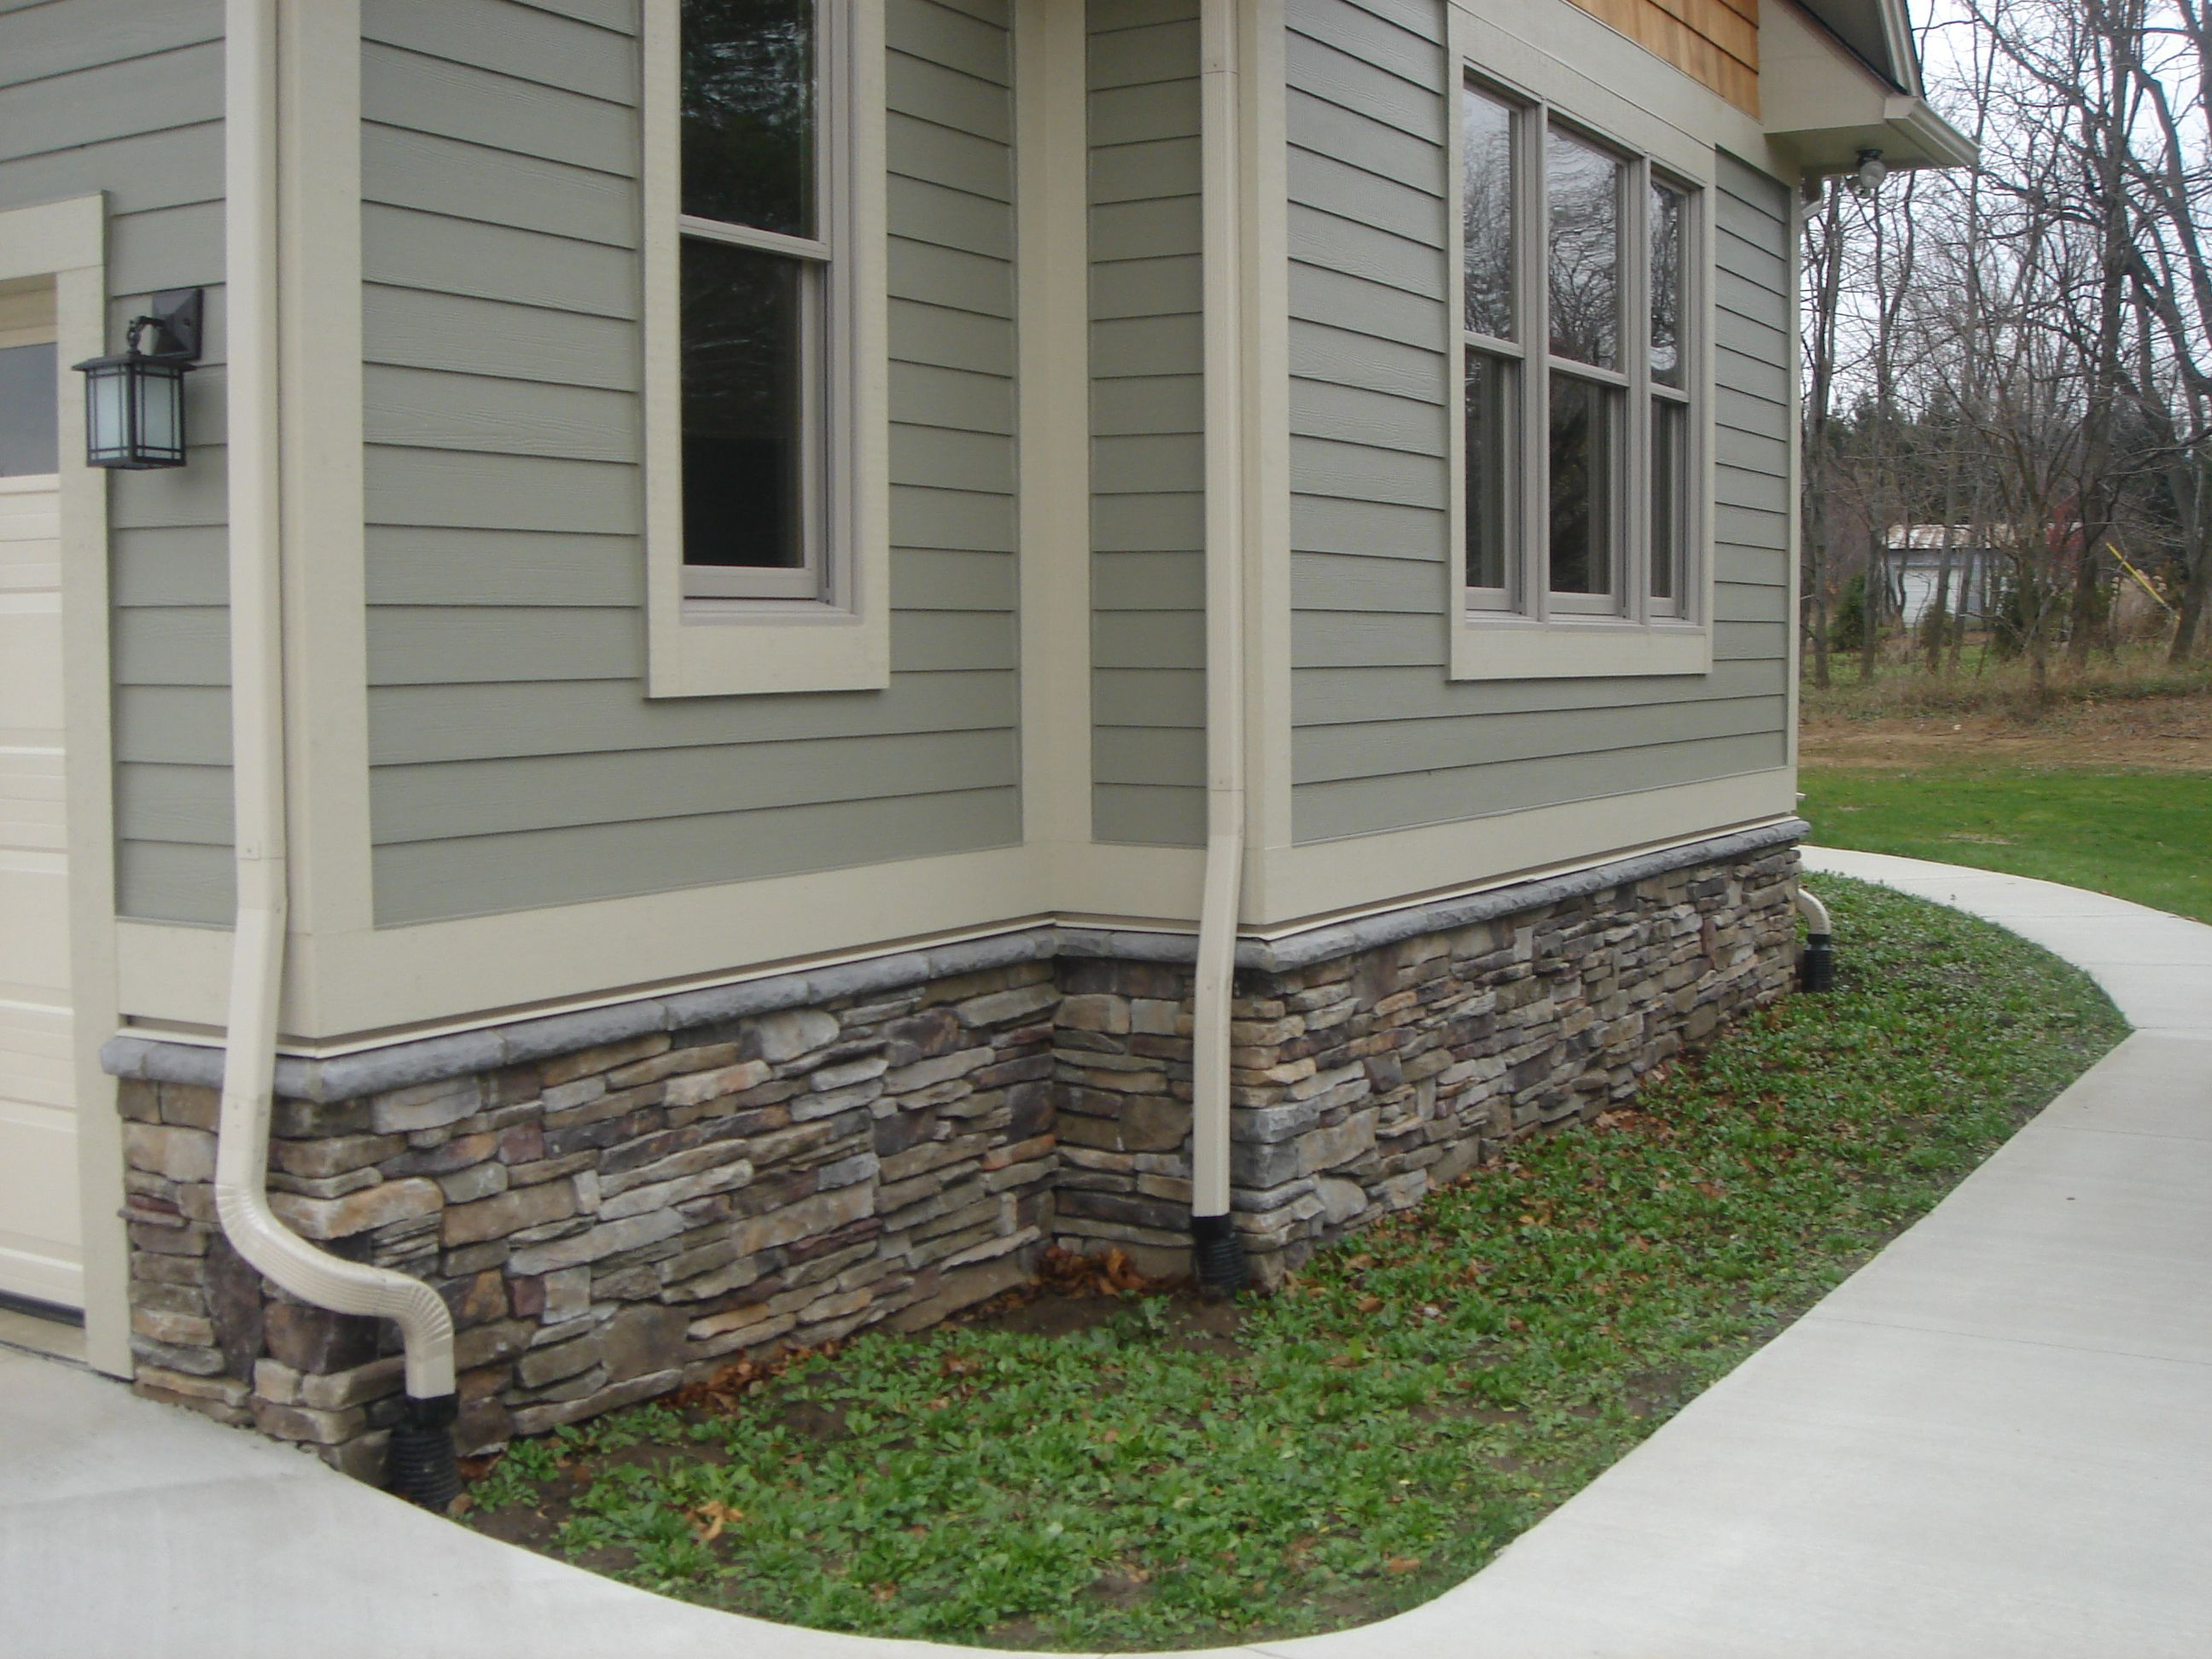 Southern siding augusta ga - Bucks County Southern Ledgestone With Grey Water Table Sills By Boral Cultured Stone